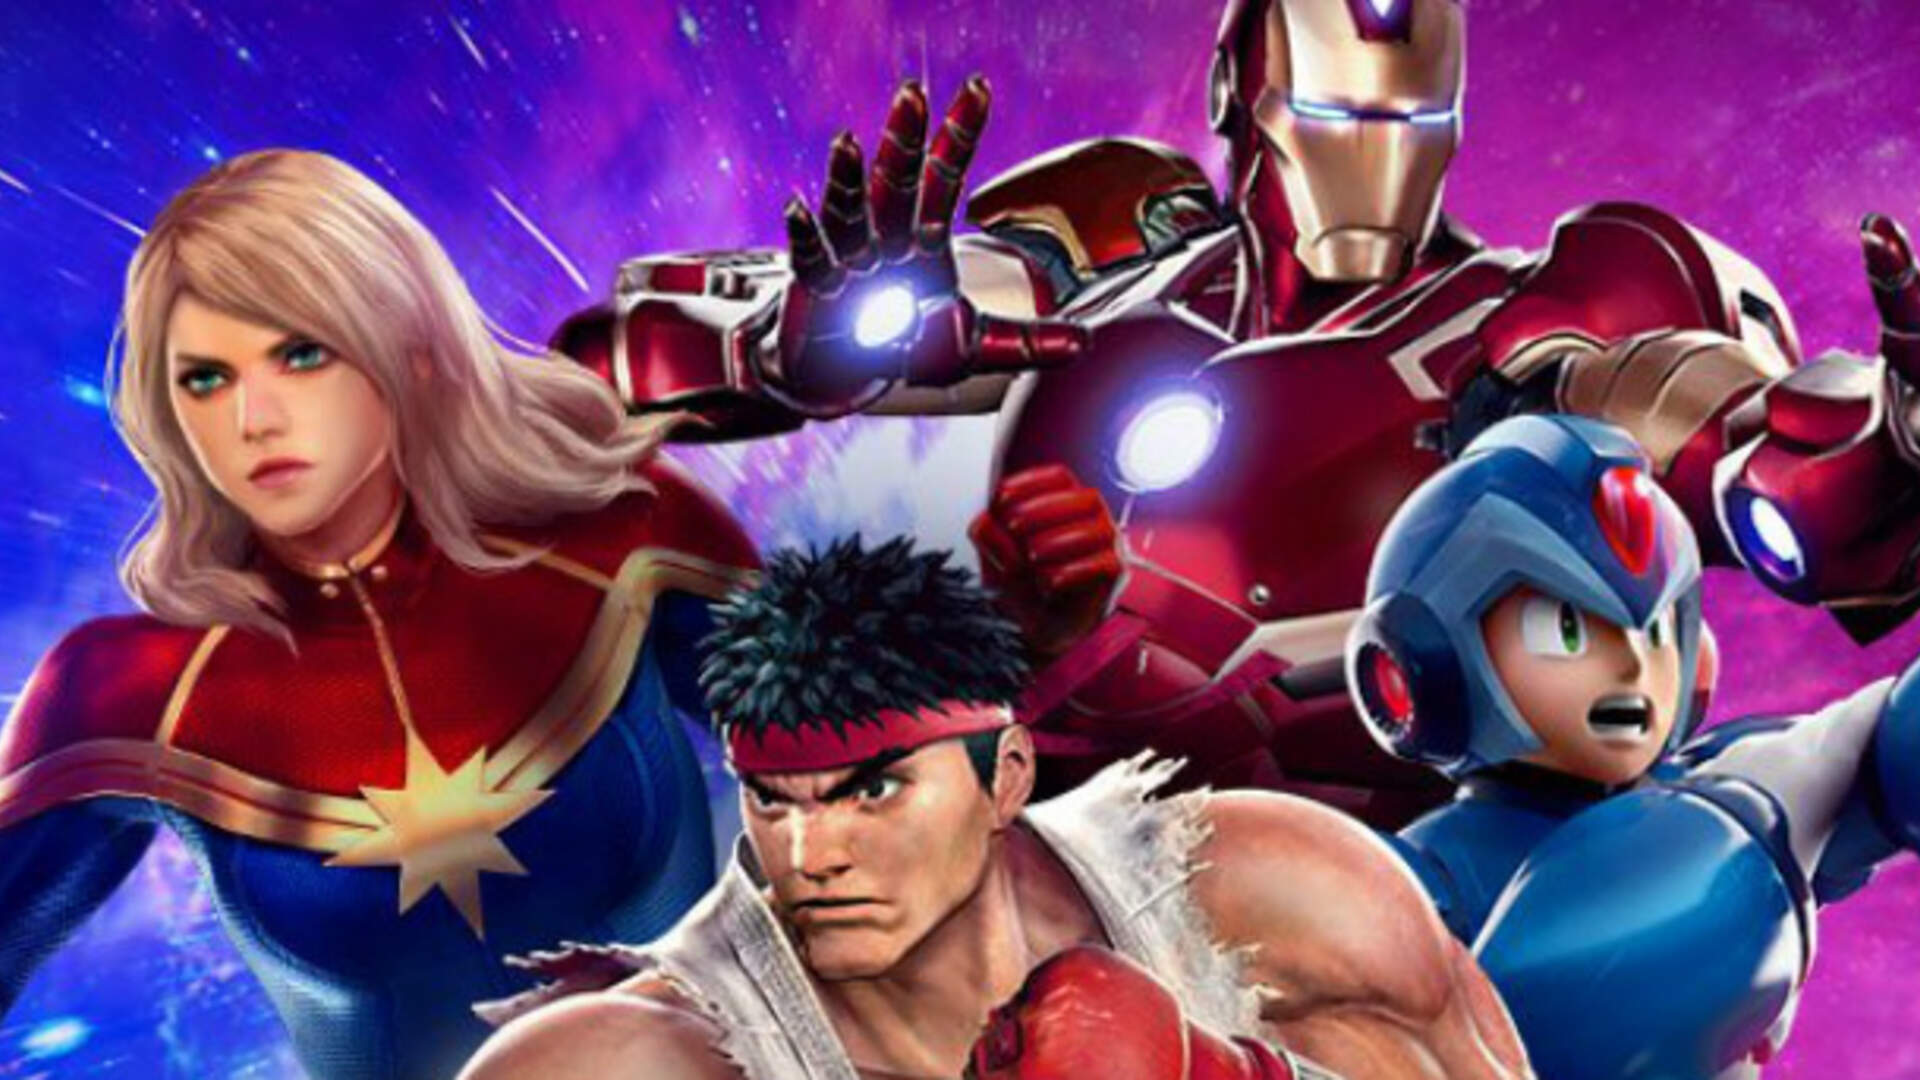 Rumor: Marvel vs Capcom Infinite Revamp Will Rebrand as Marvel vs Capcom 4